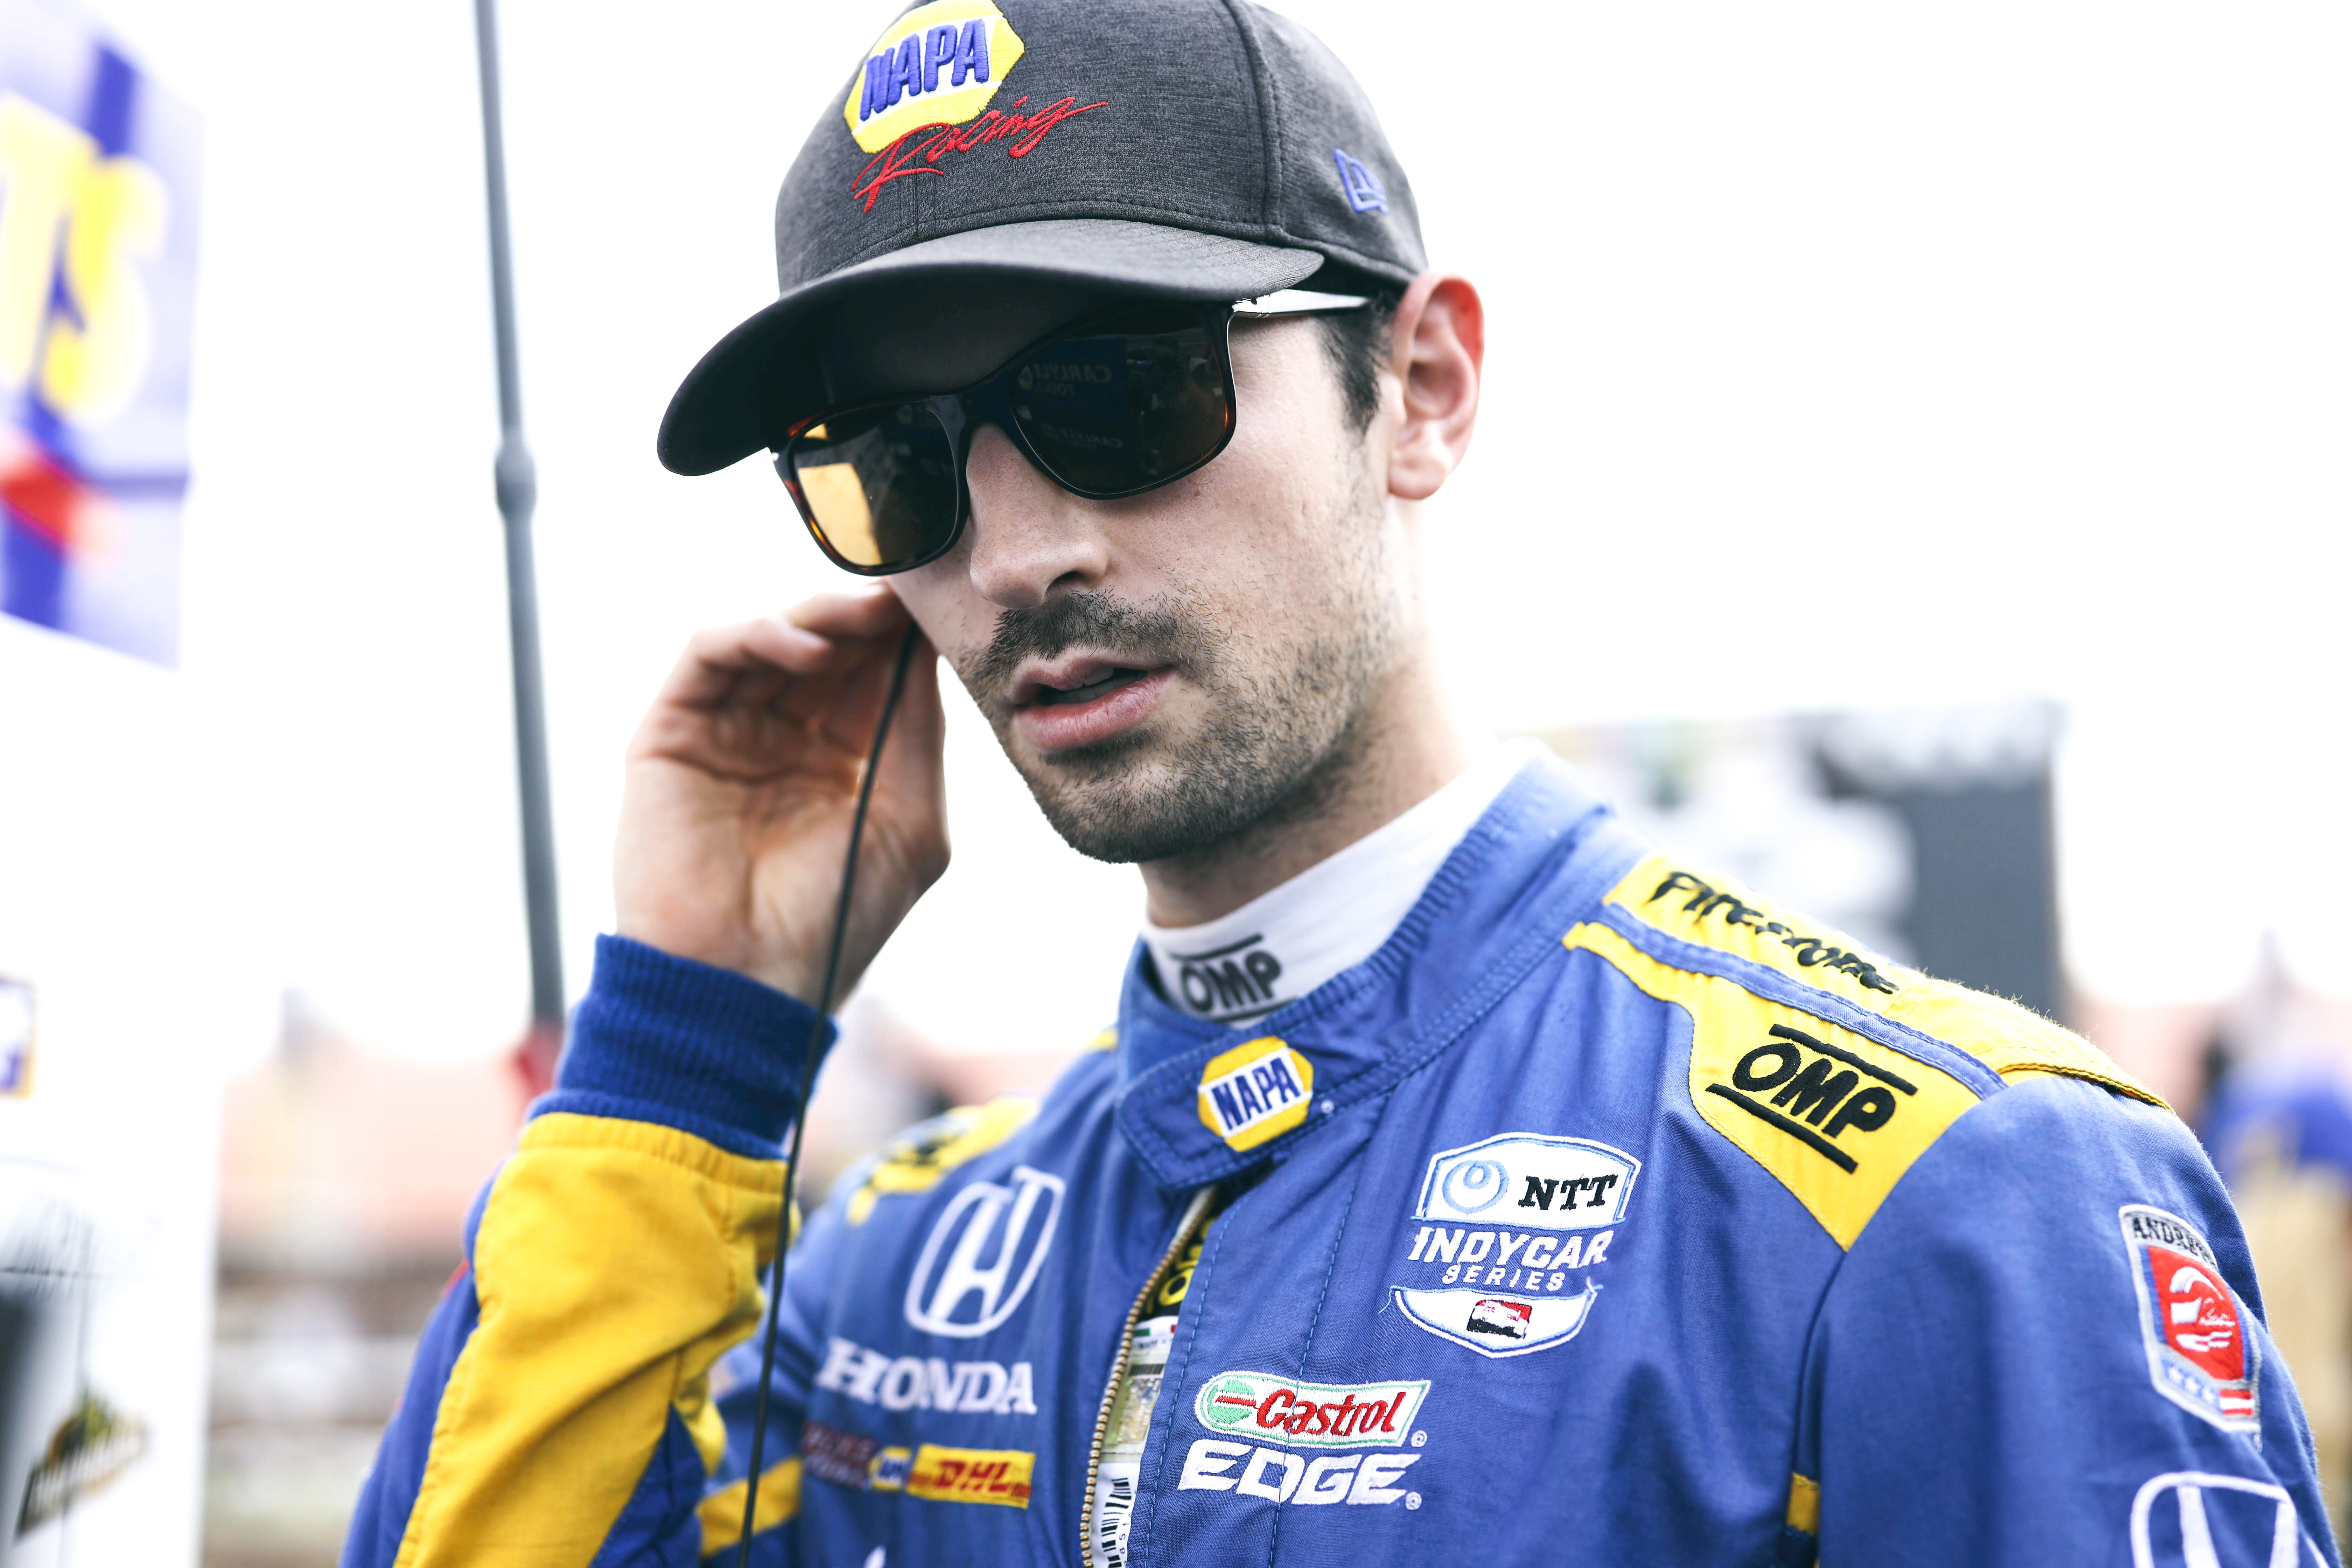 Andretti Autosport IndyCar driver Alexander Rossi prepares to get in his IndyCar at the Honda Indy 200 at Mid-Ohio